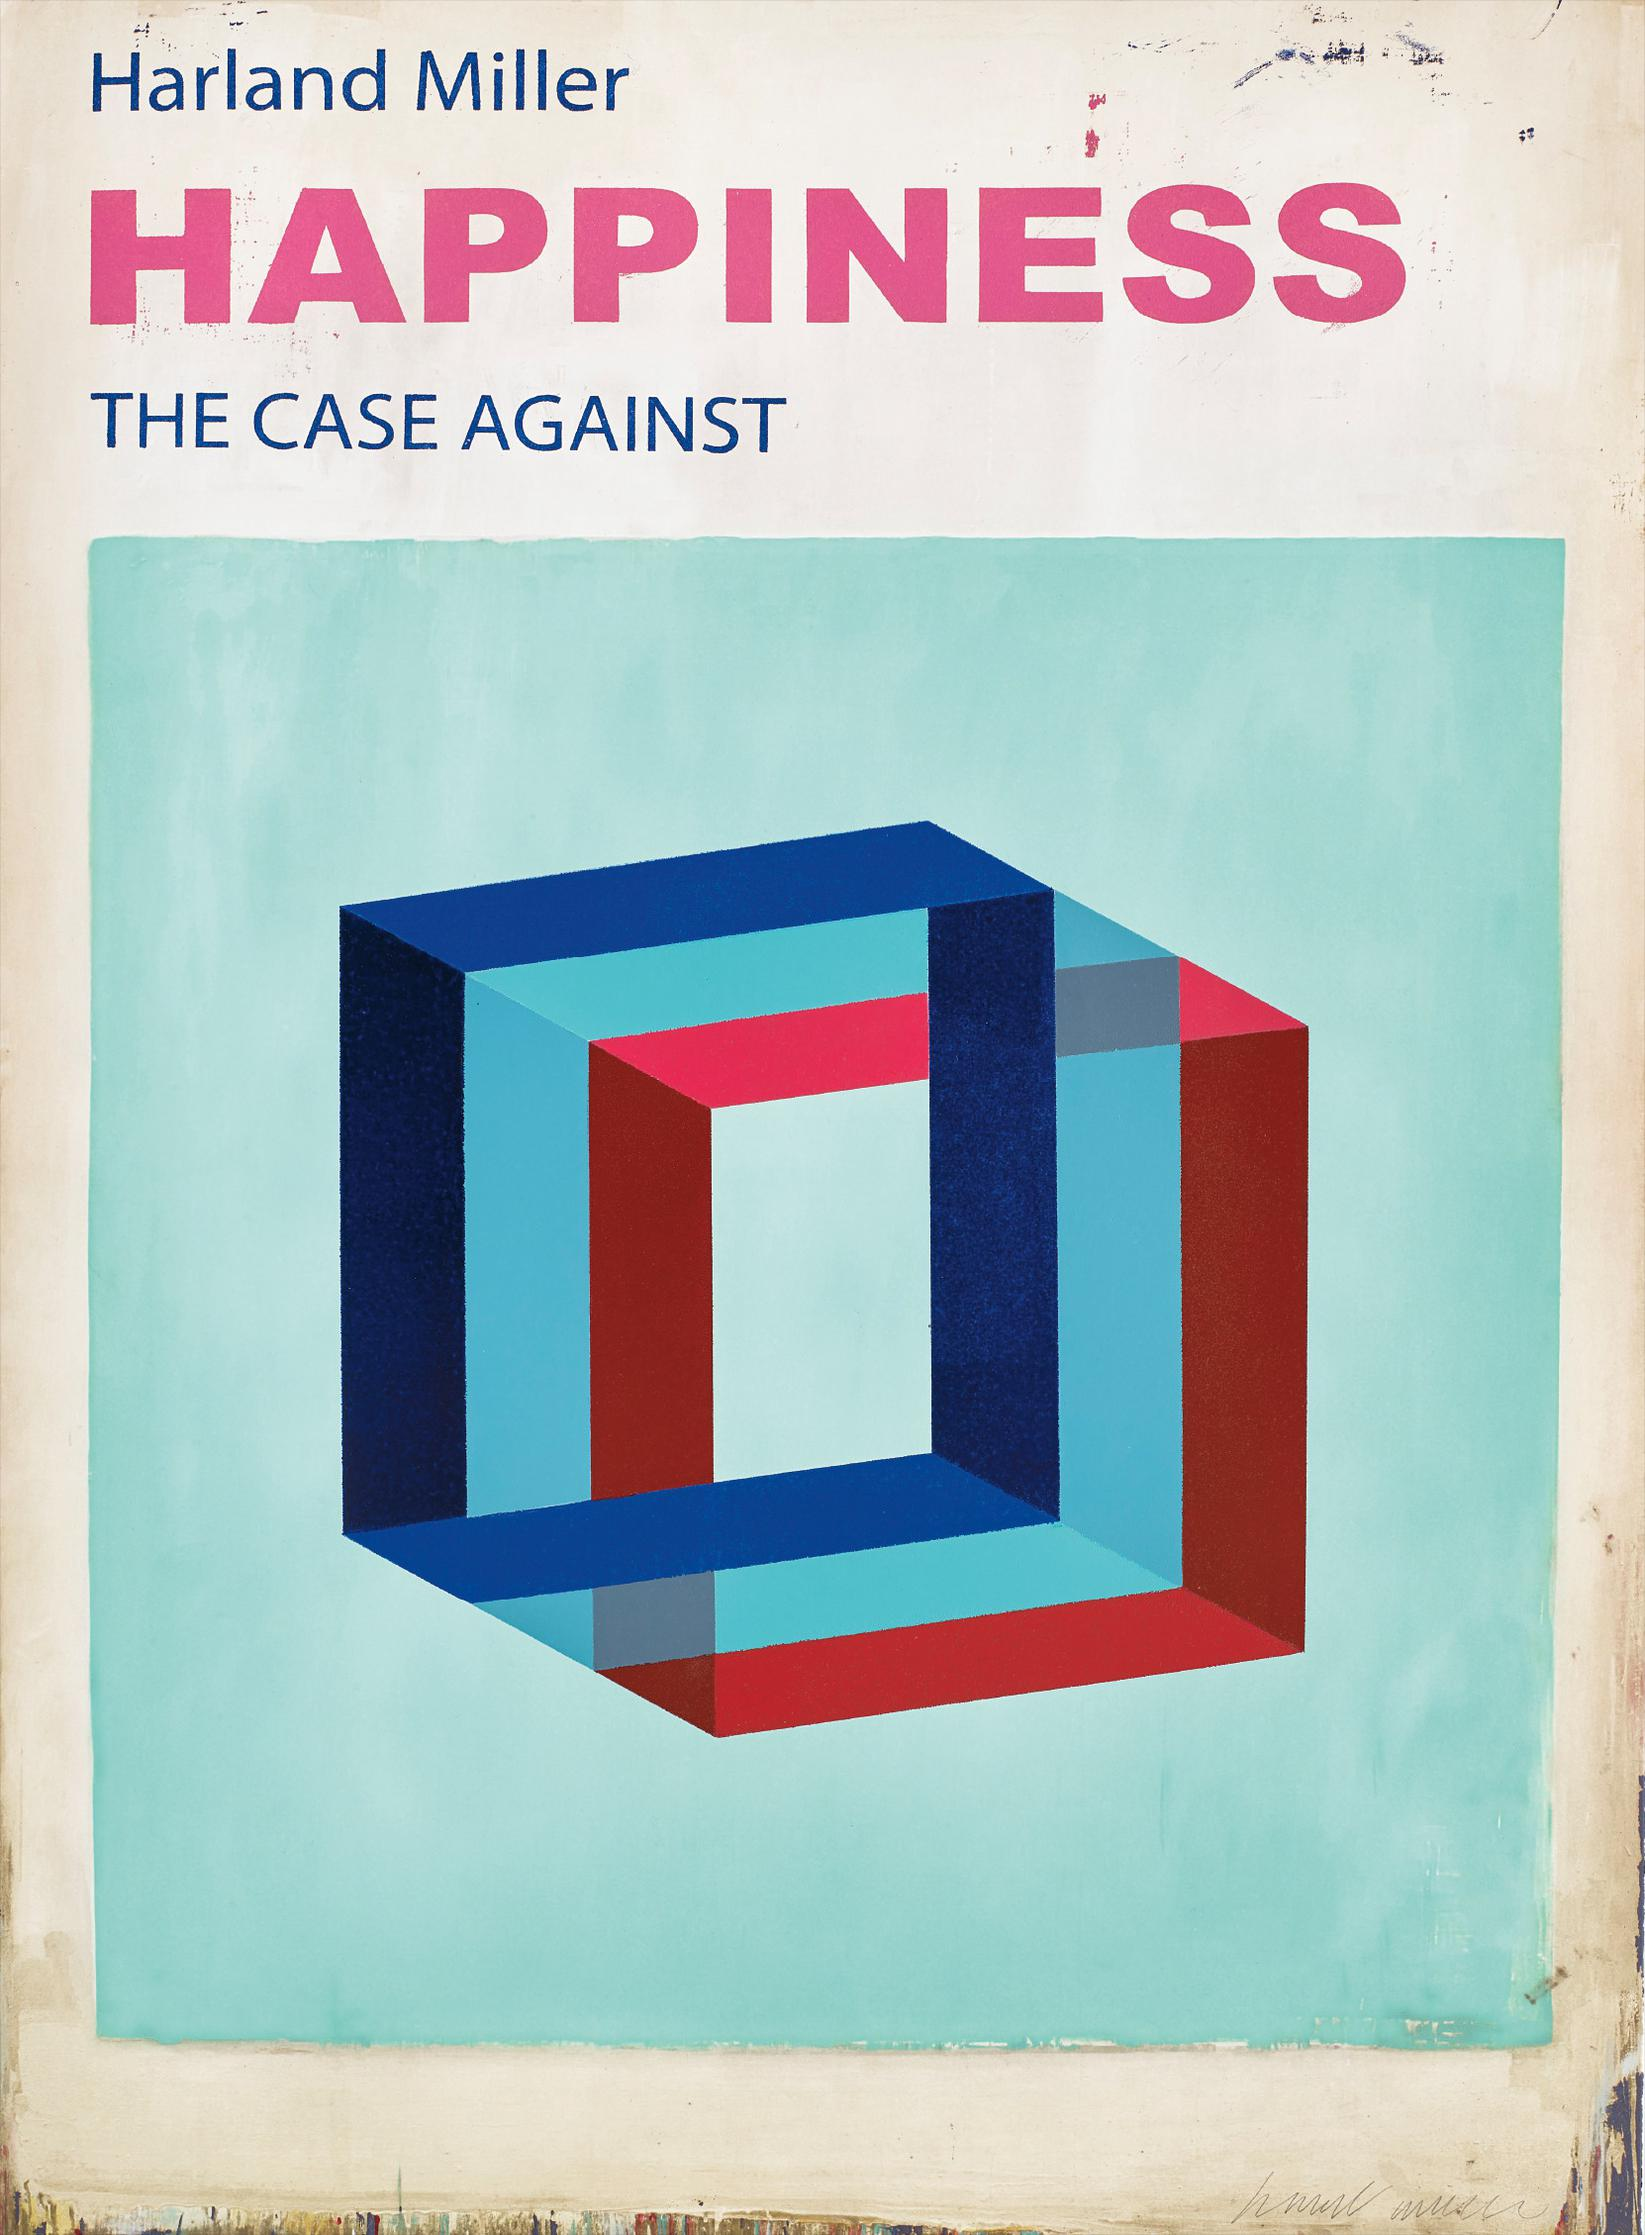 Harland Miller-Happiness: The Case Against-2017